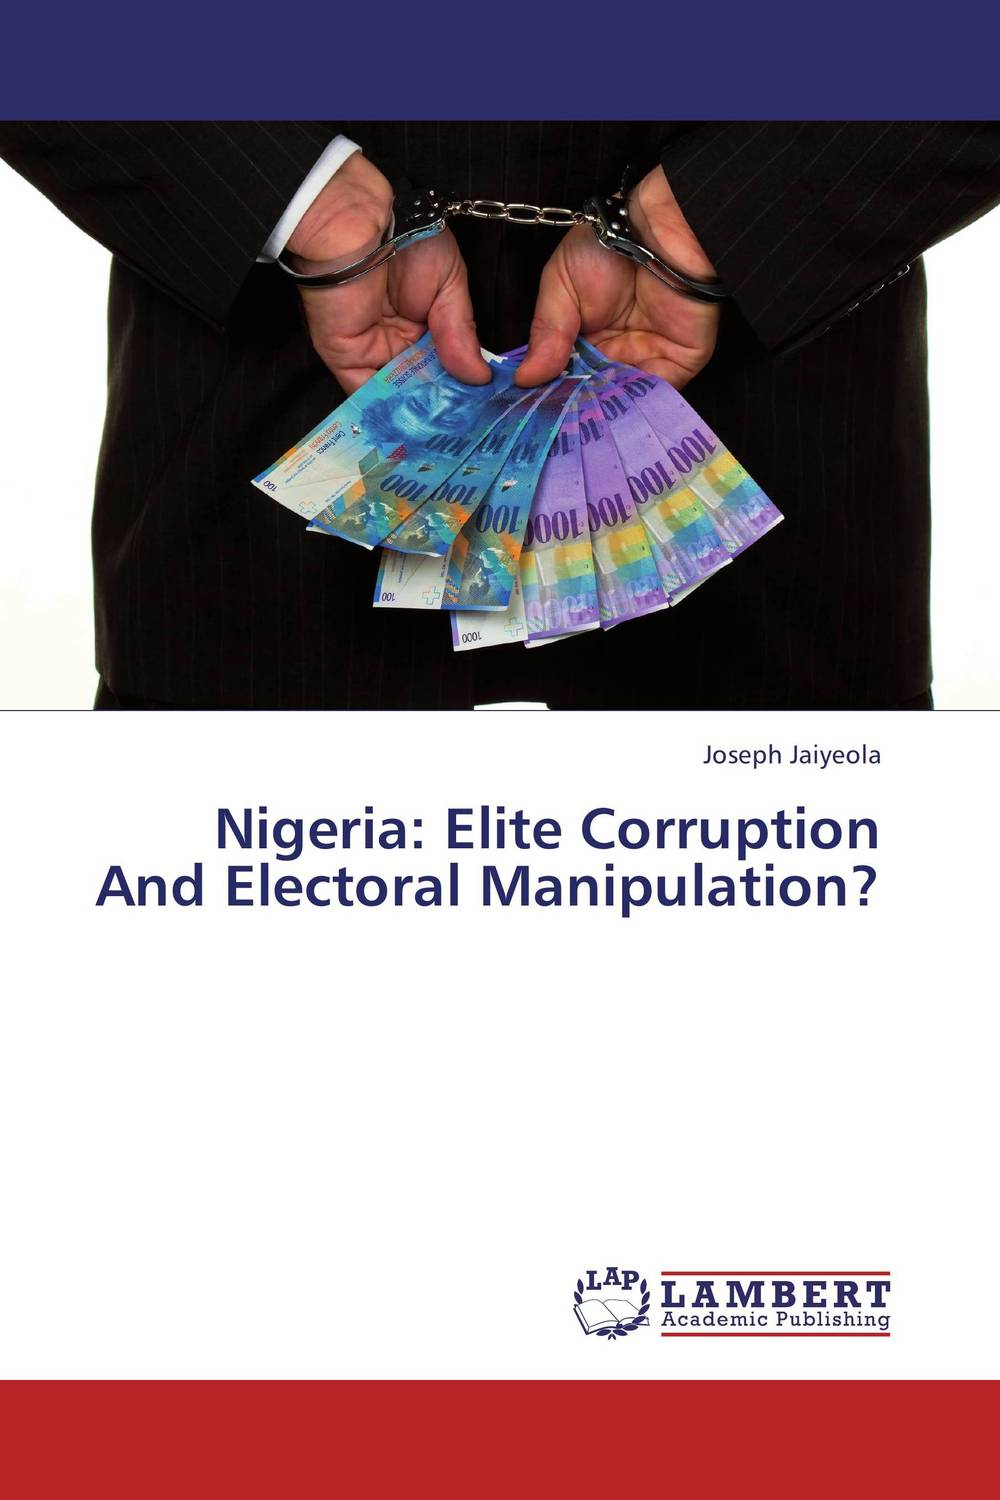 купить Nigeria: Elite Corruption And Electoral Manipulation? недорого